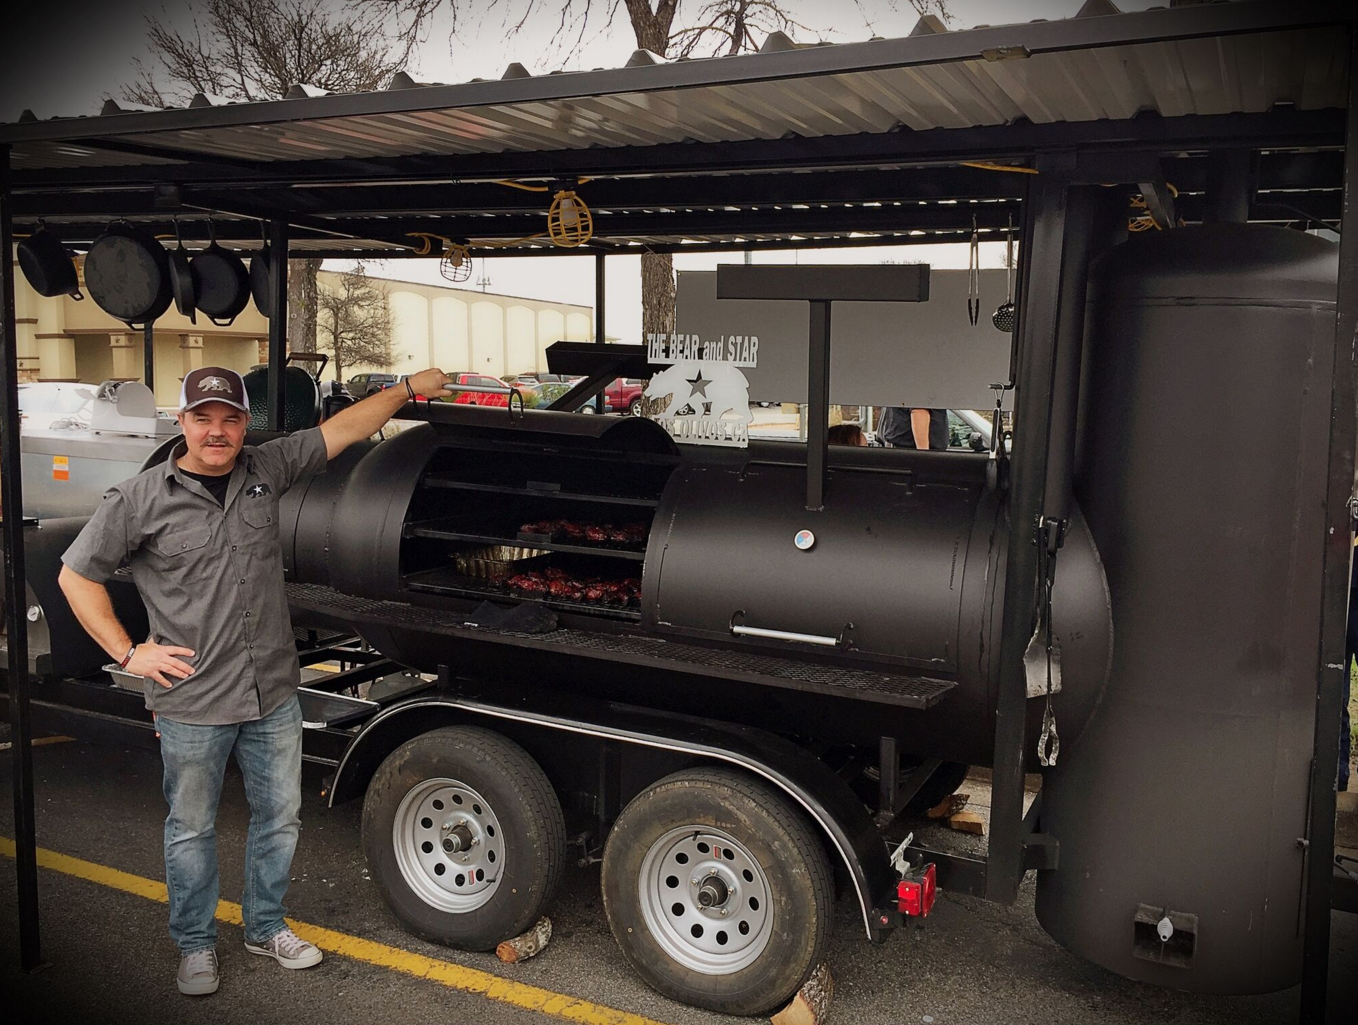 The Bear & Star's  smoker built by  Johnson Custom Smokers  in Ennis, Texas.